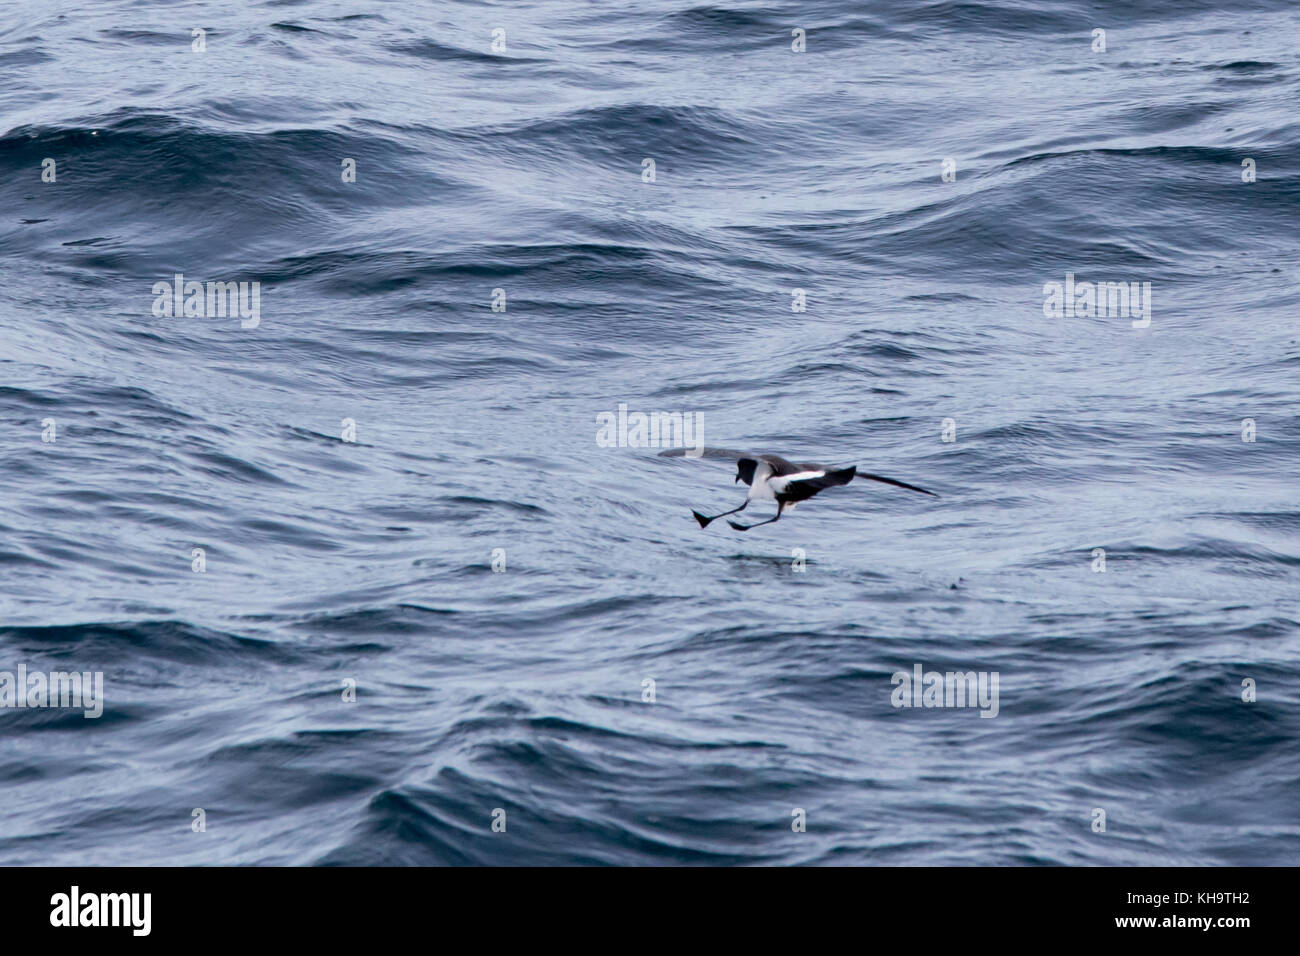 A black-bellied storm-petrel feeds over the open ocean in the middle of the Atlantic Ocean Stock Photo